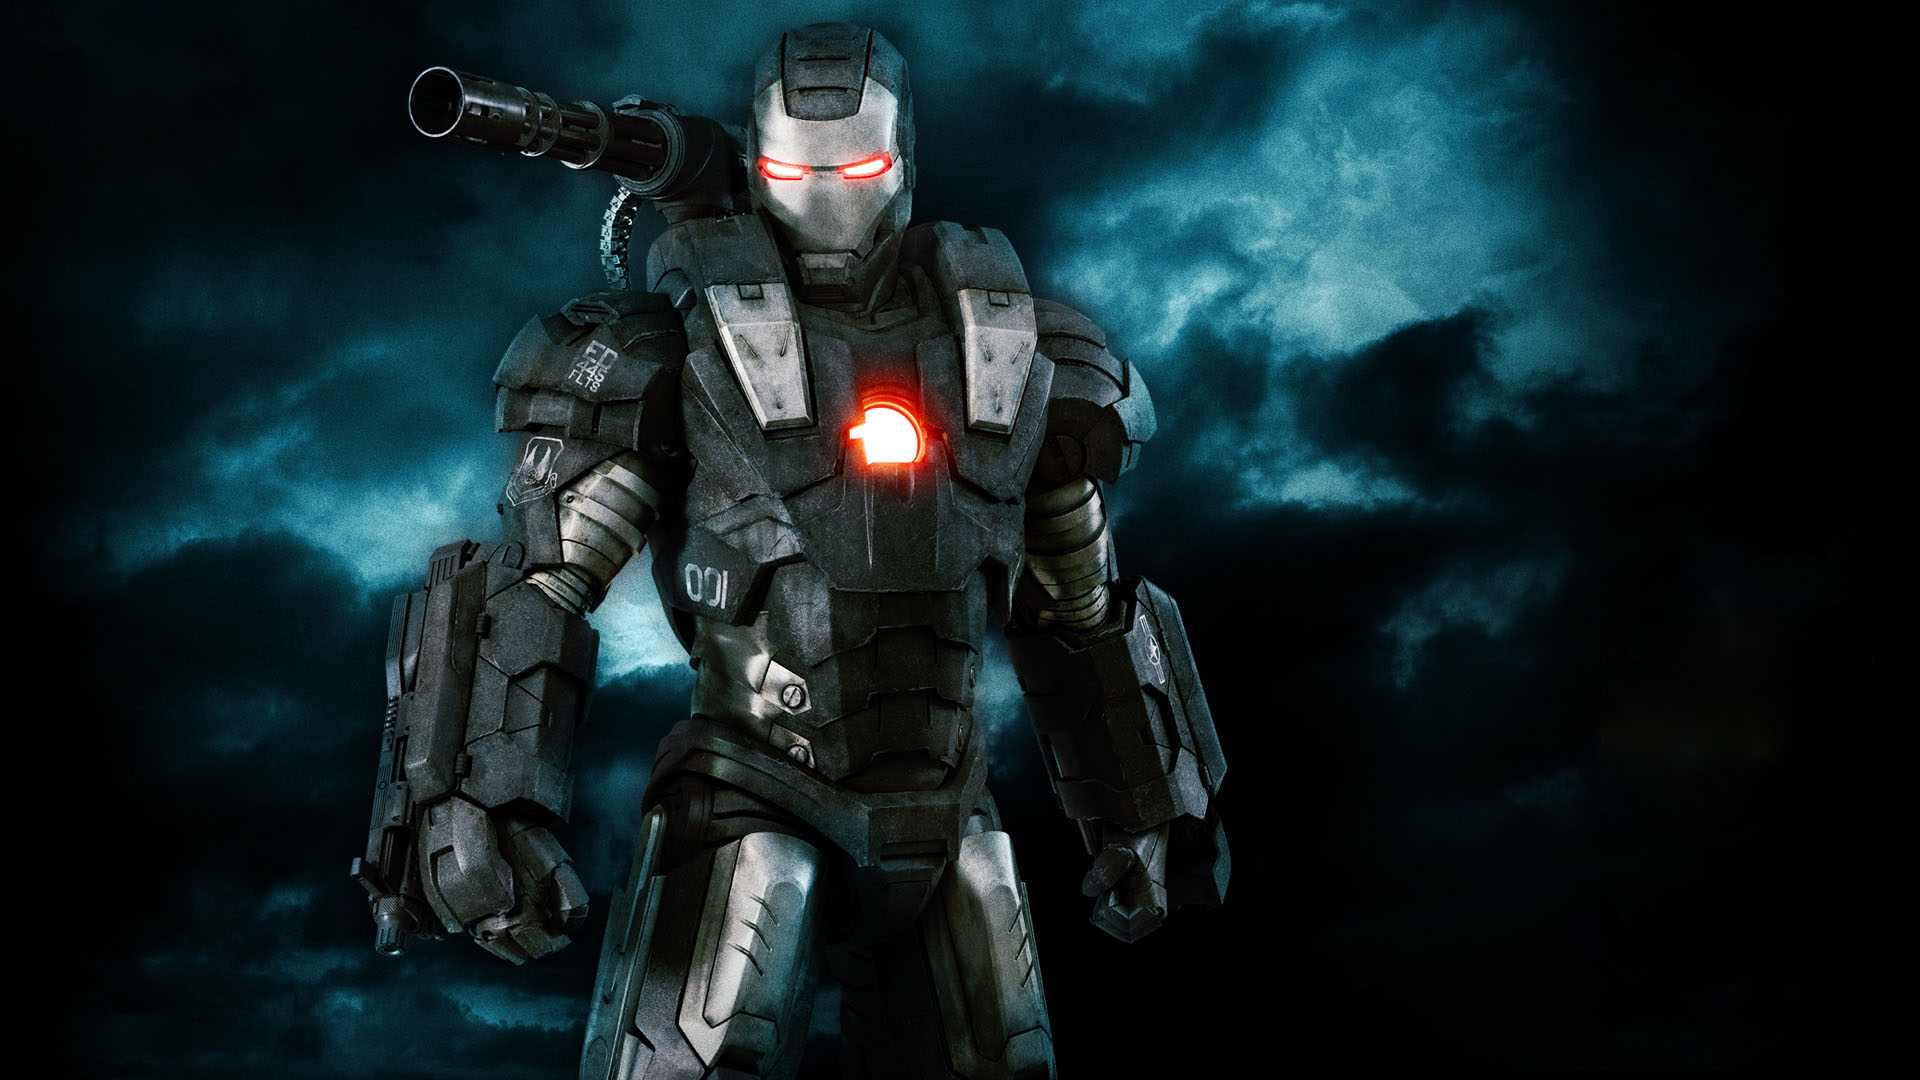 Black Iron Man Image